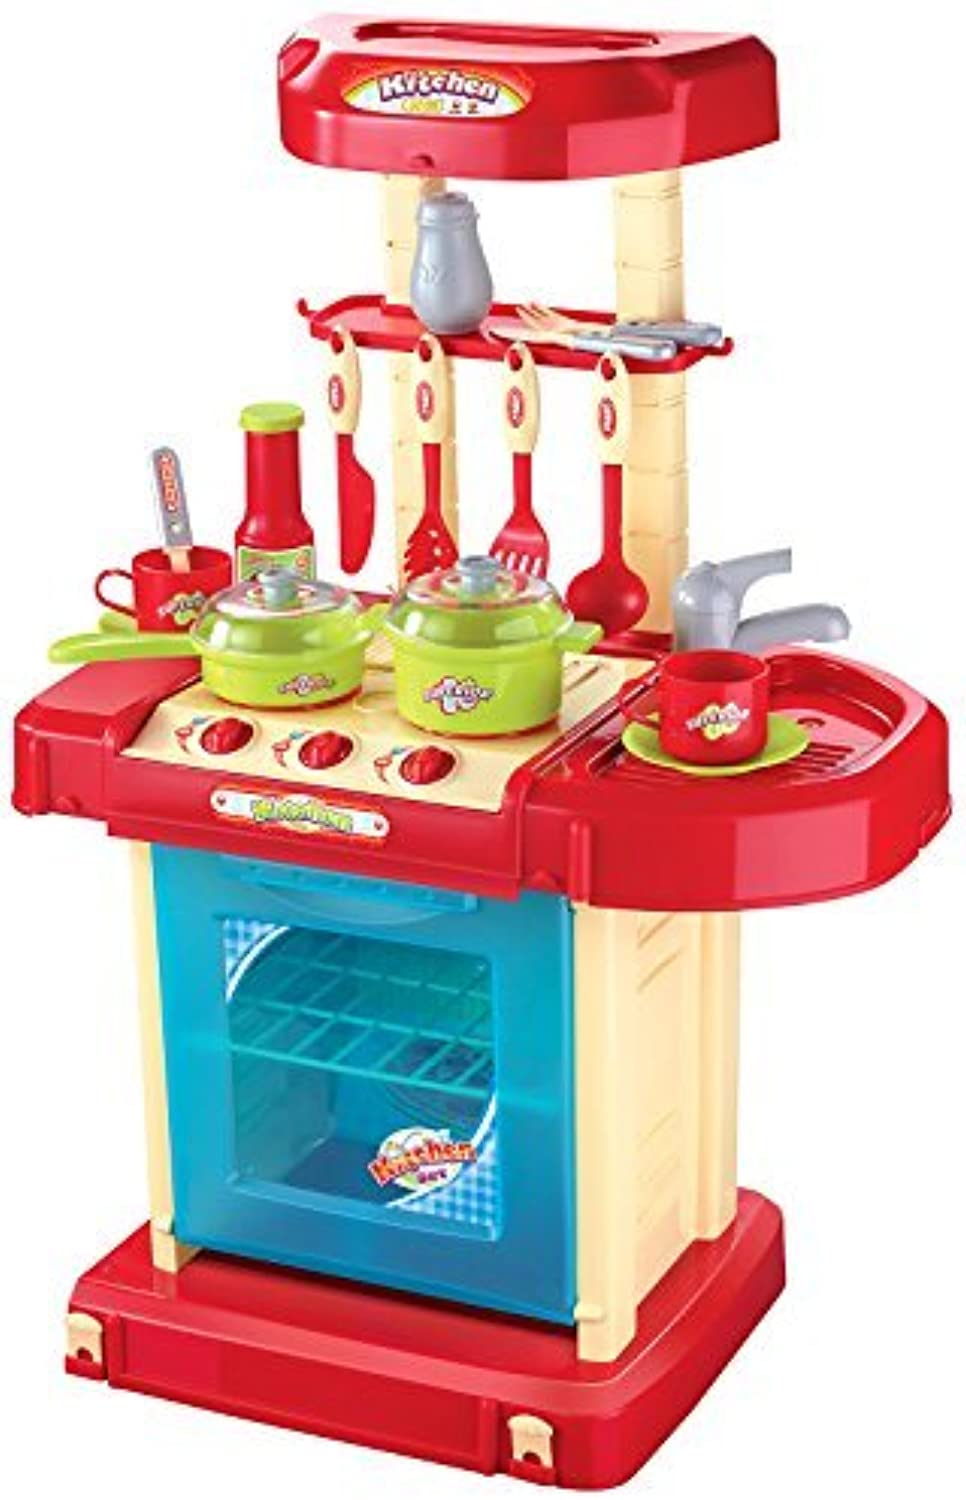 Berry Toys Play and Carry Plastic Play Kitchen, rot by Berry Toys